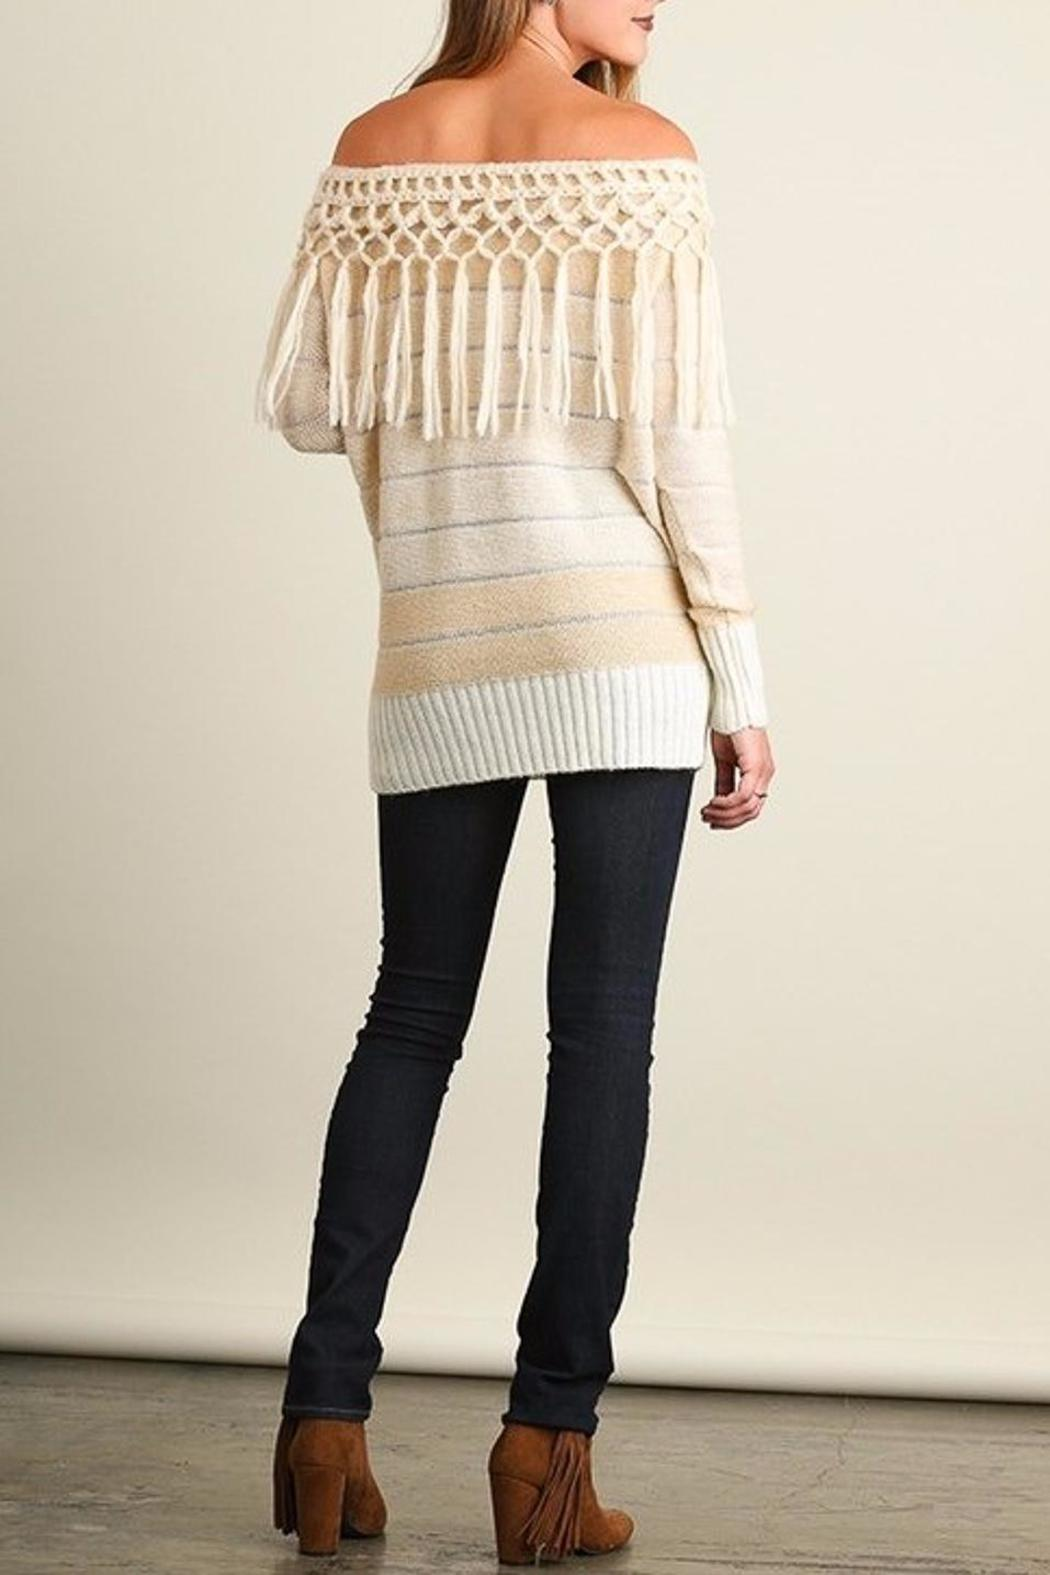 People Outfitter Tassels Tunic Sweater - Back Cropped Image